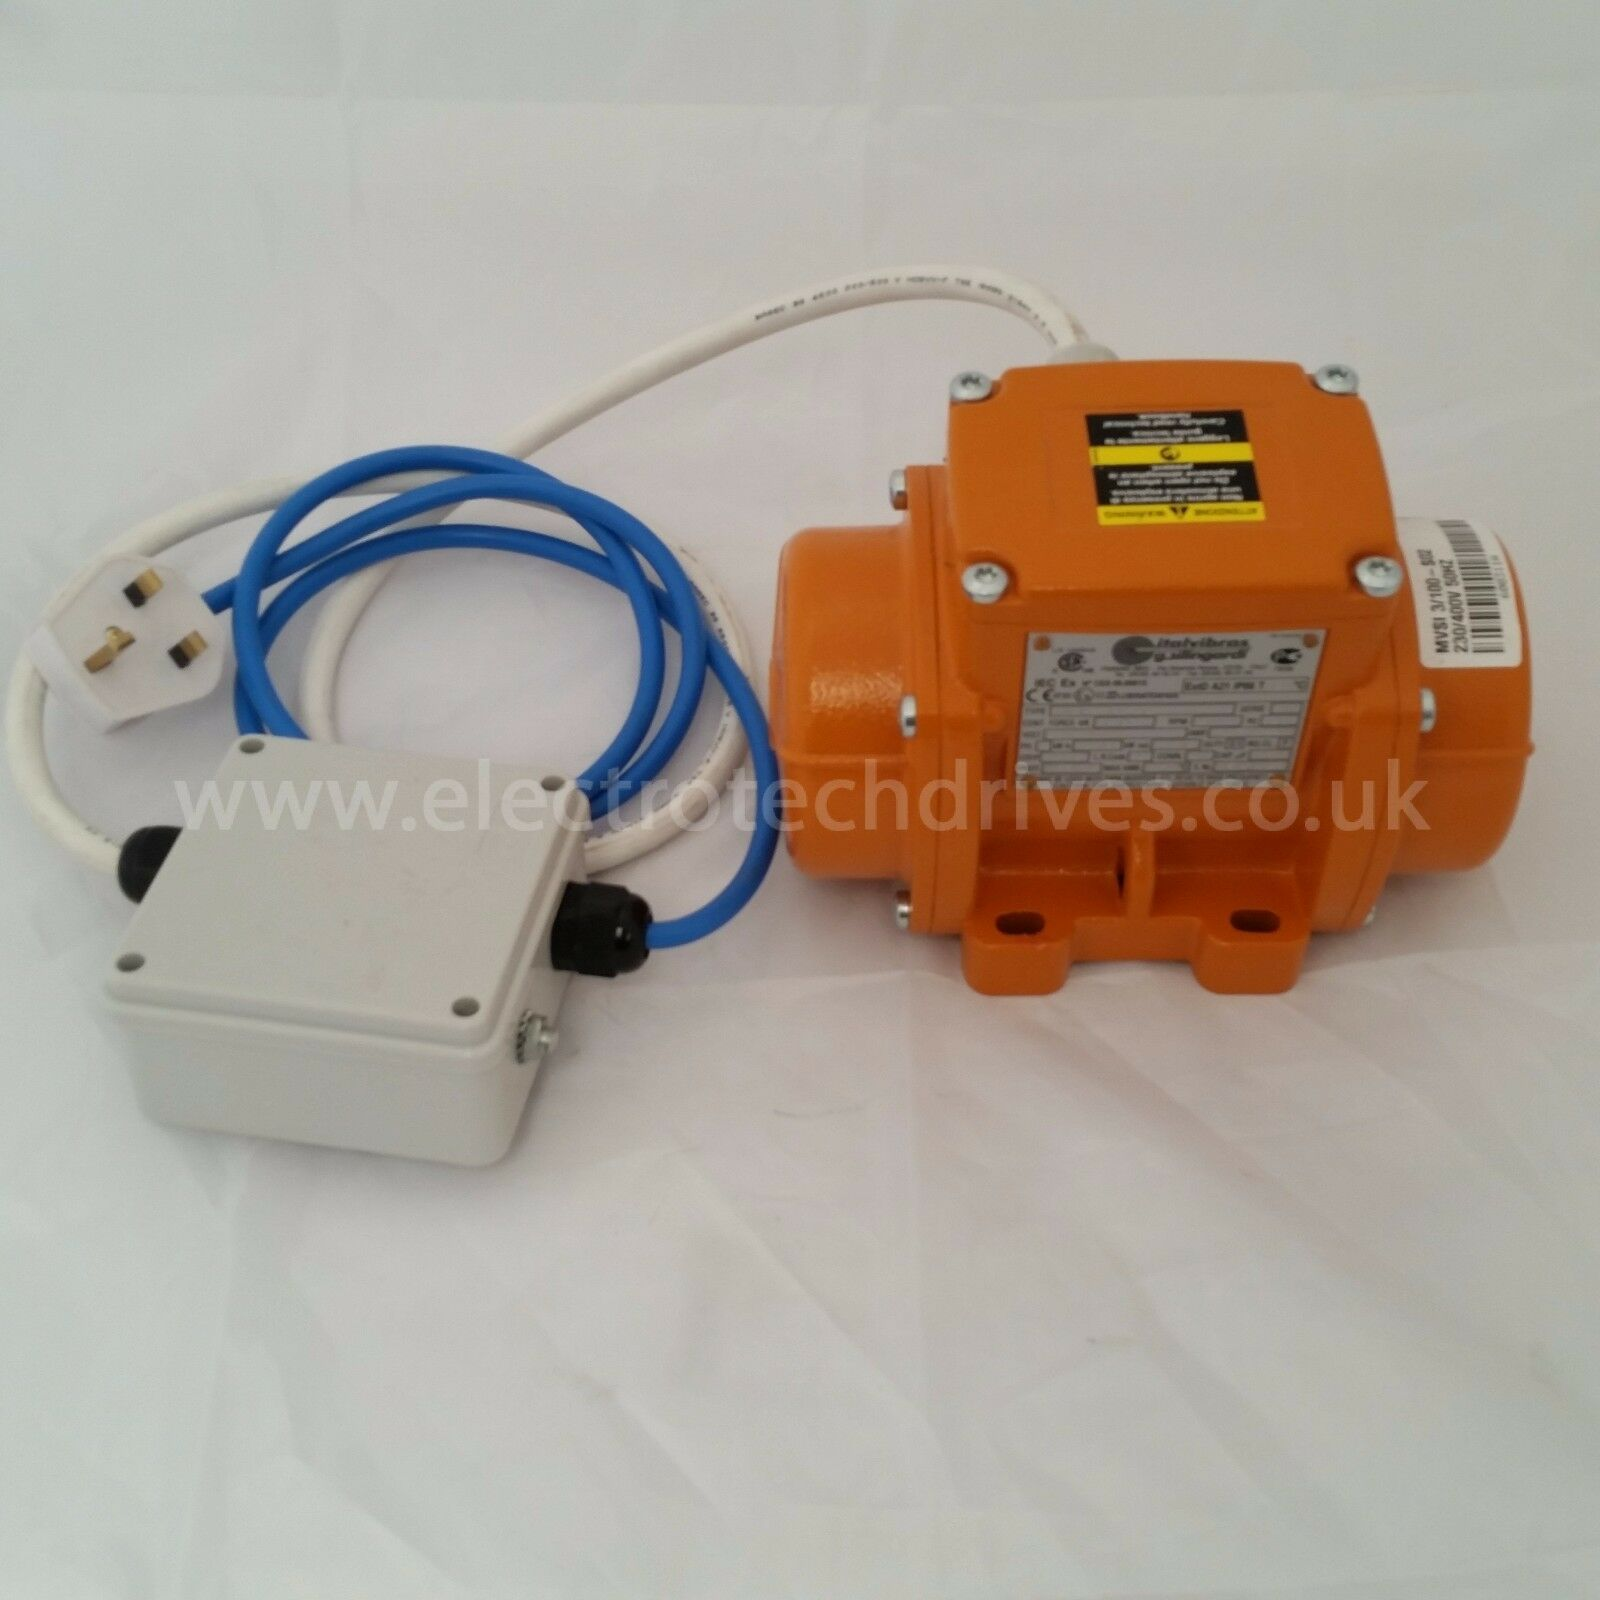 Vibtec Vibrator Motor Mvsi3 100 S02 Single Phase